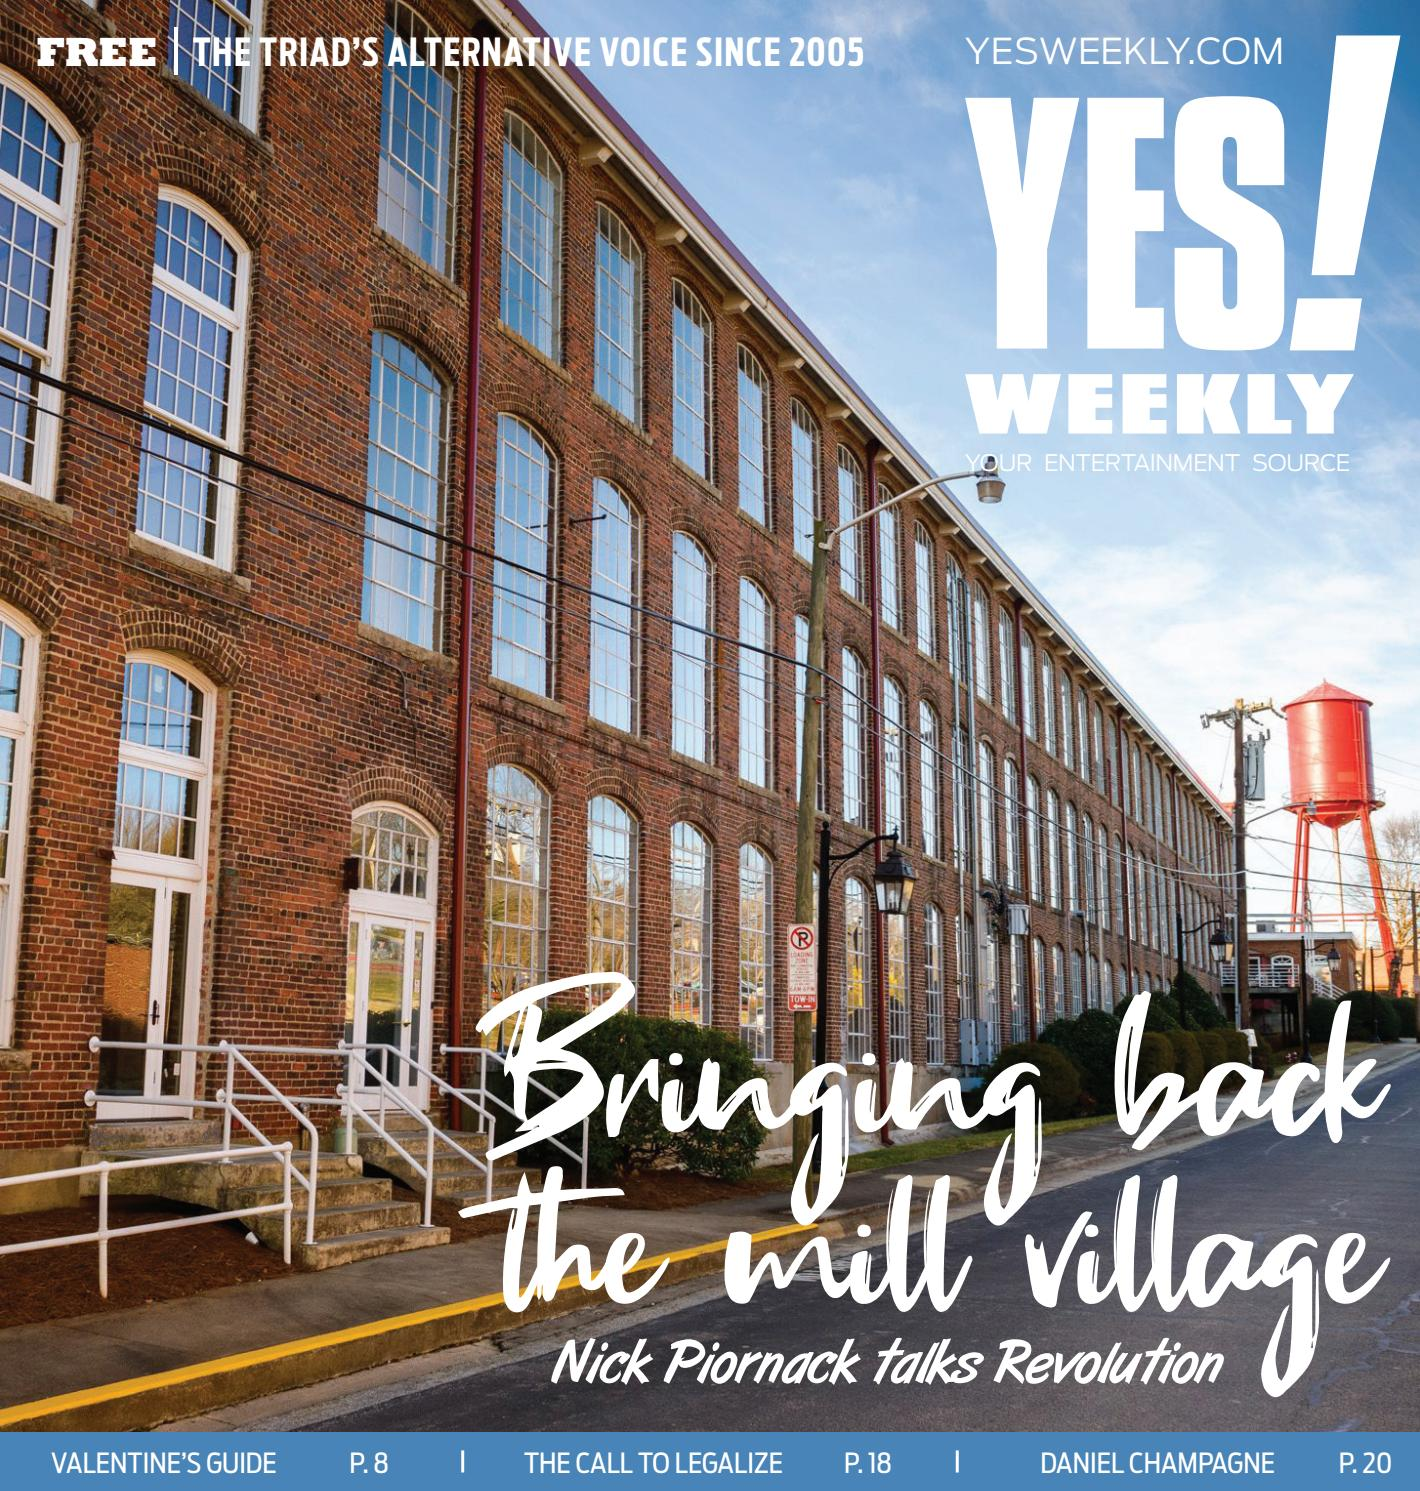 YES! Weekly - February 6, 2019 by YES! Weekly - issuu